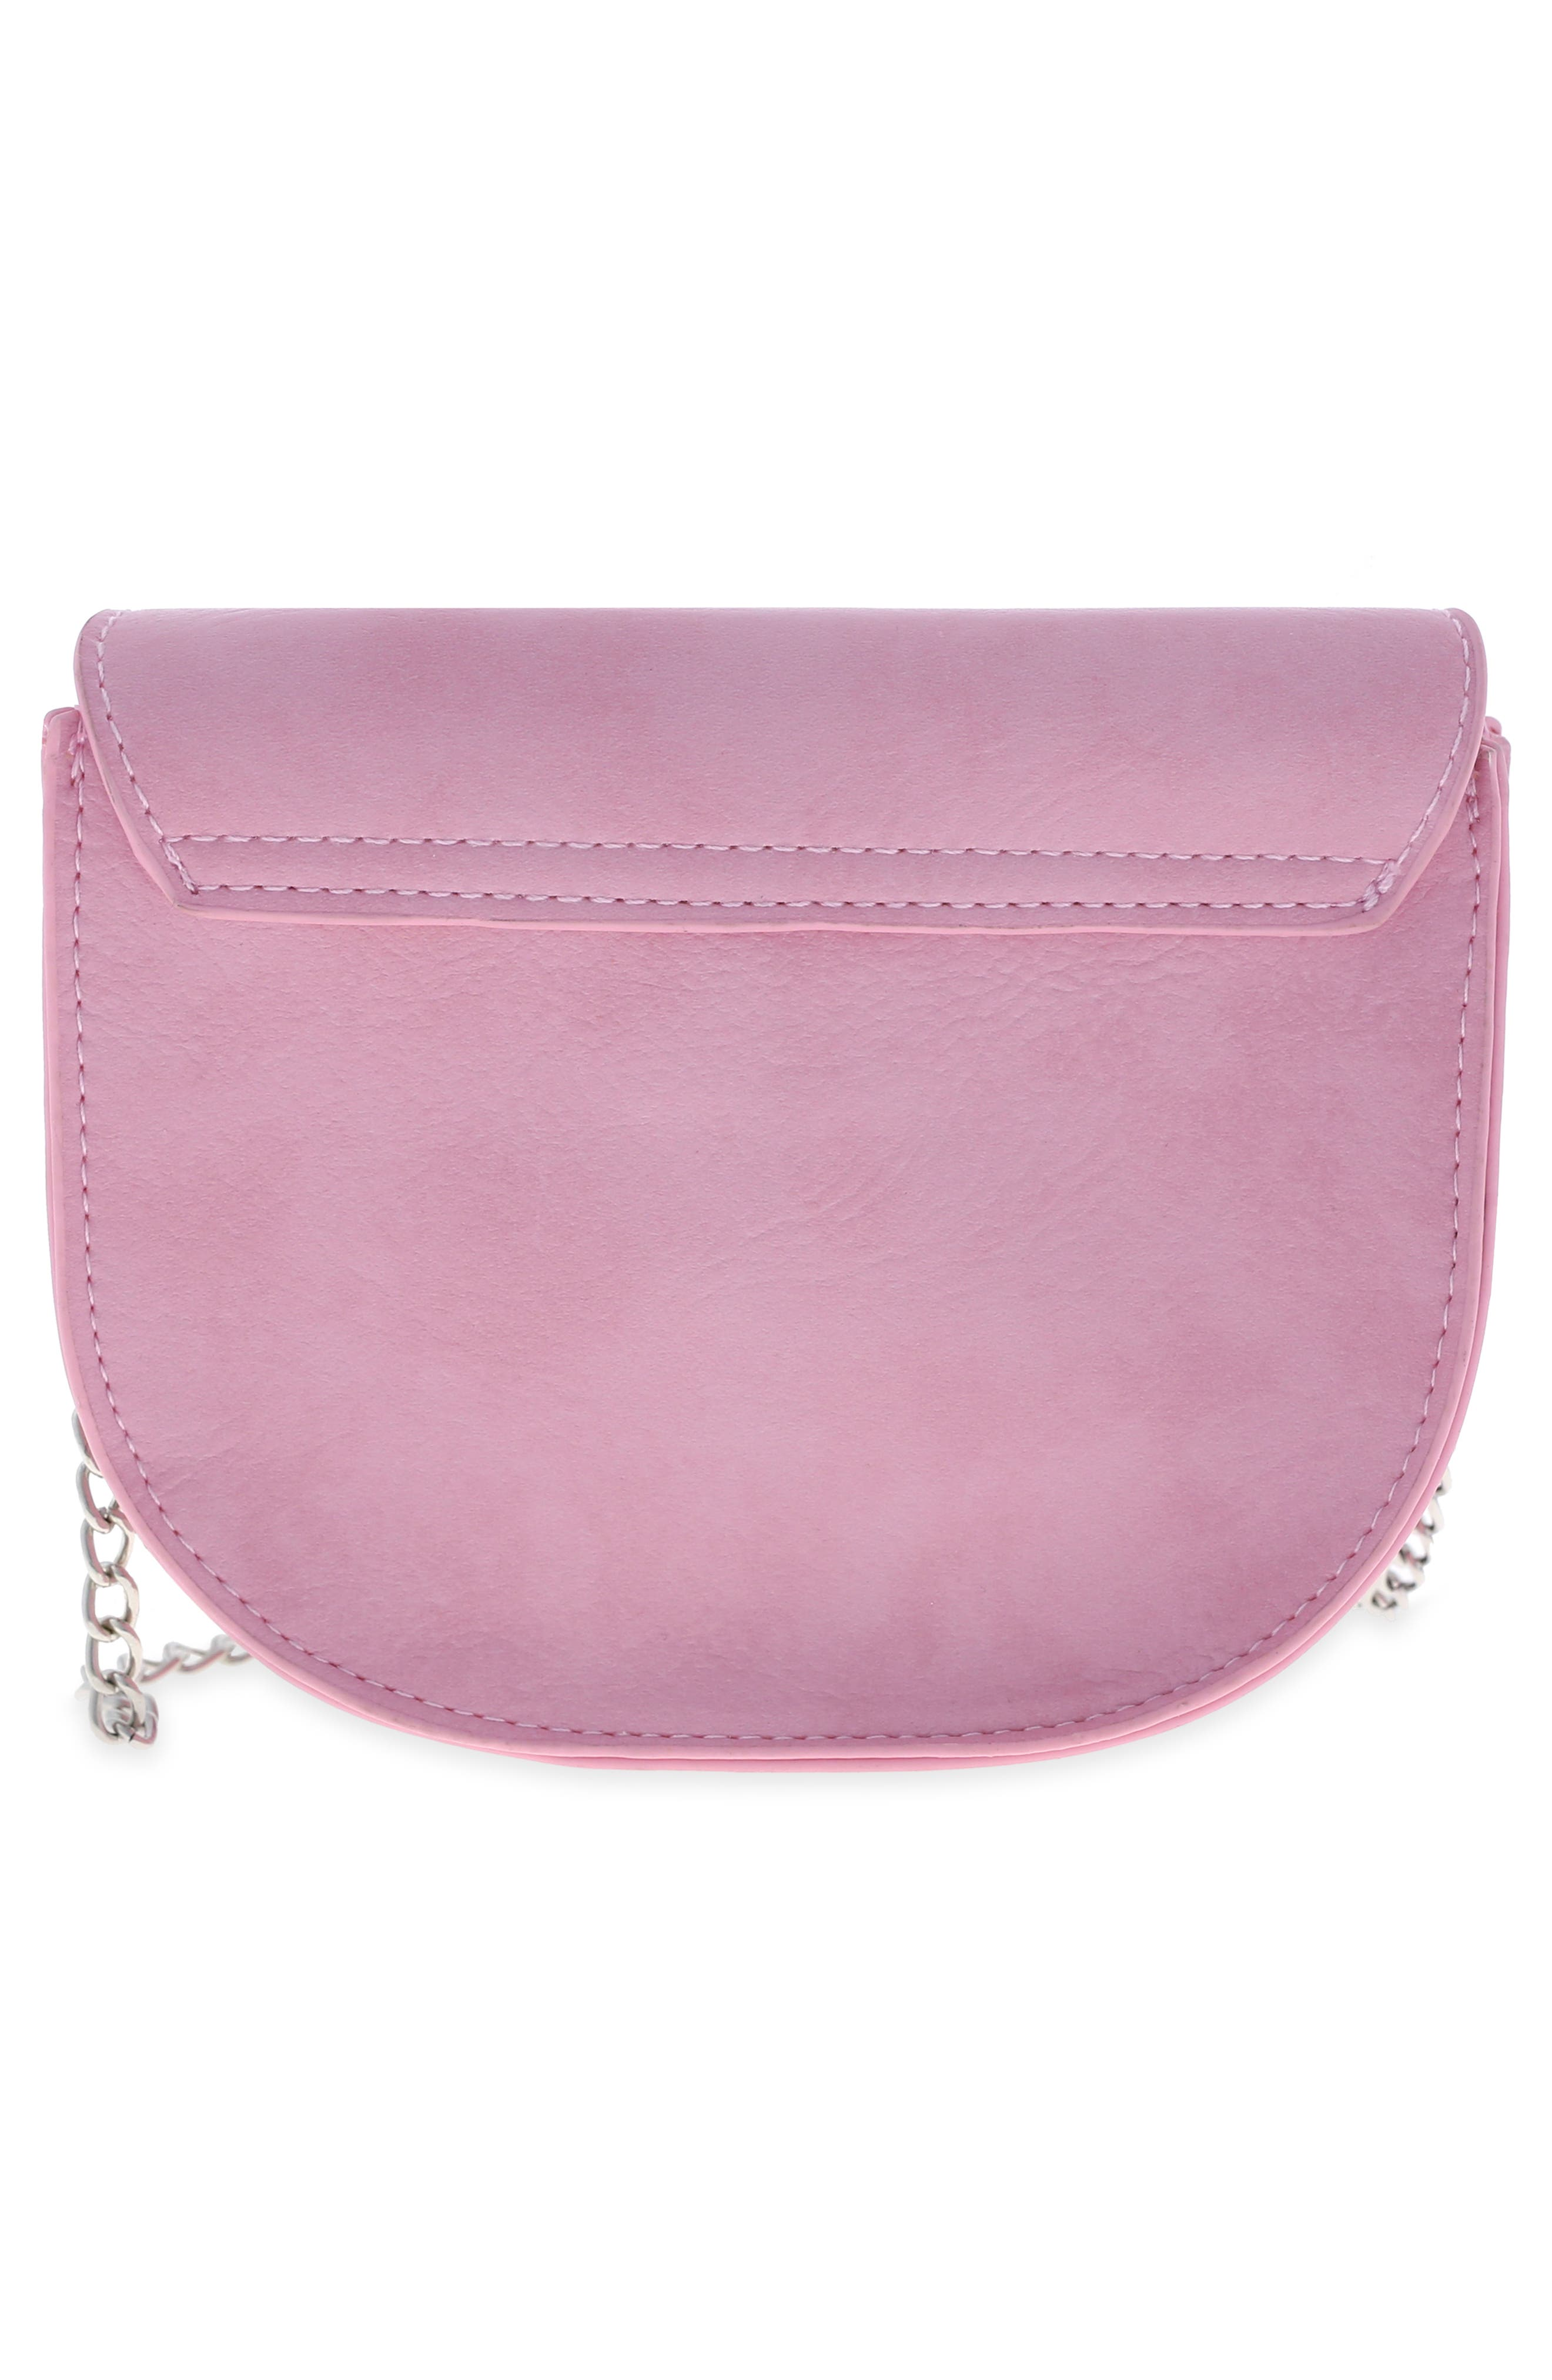 Studded Bag,                             Alternate thumbnail 2, color,                             659